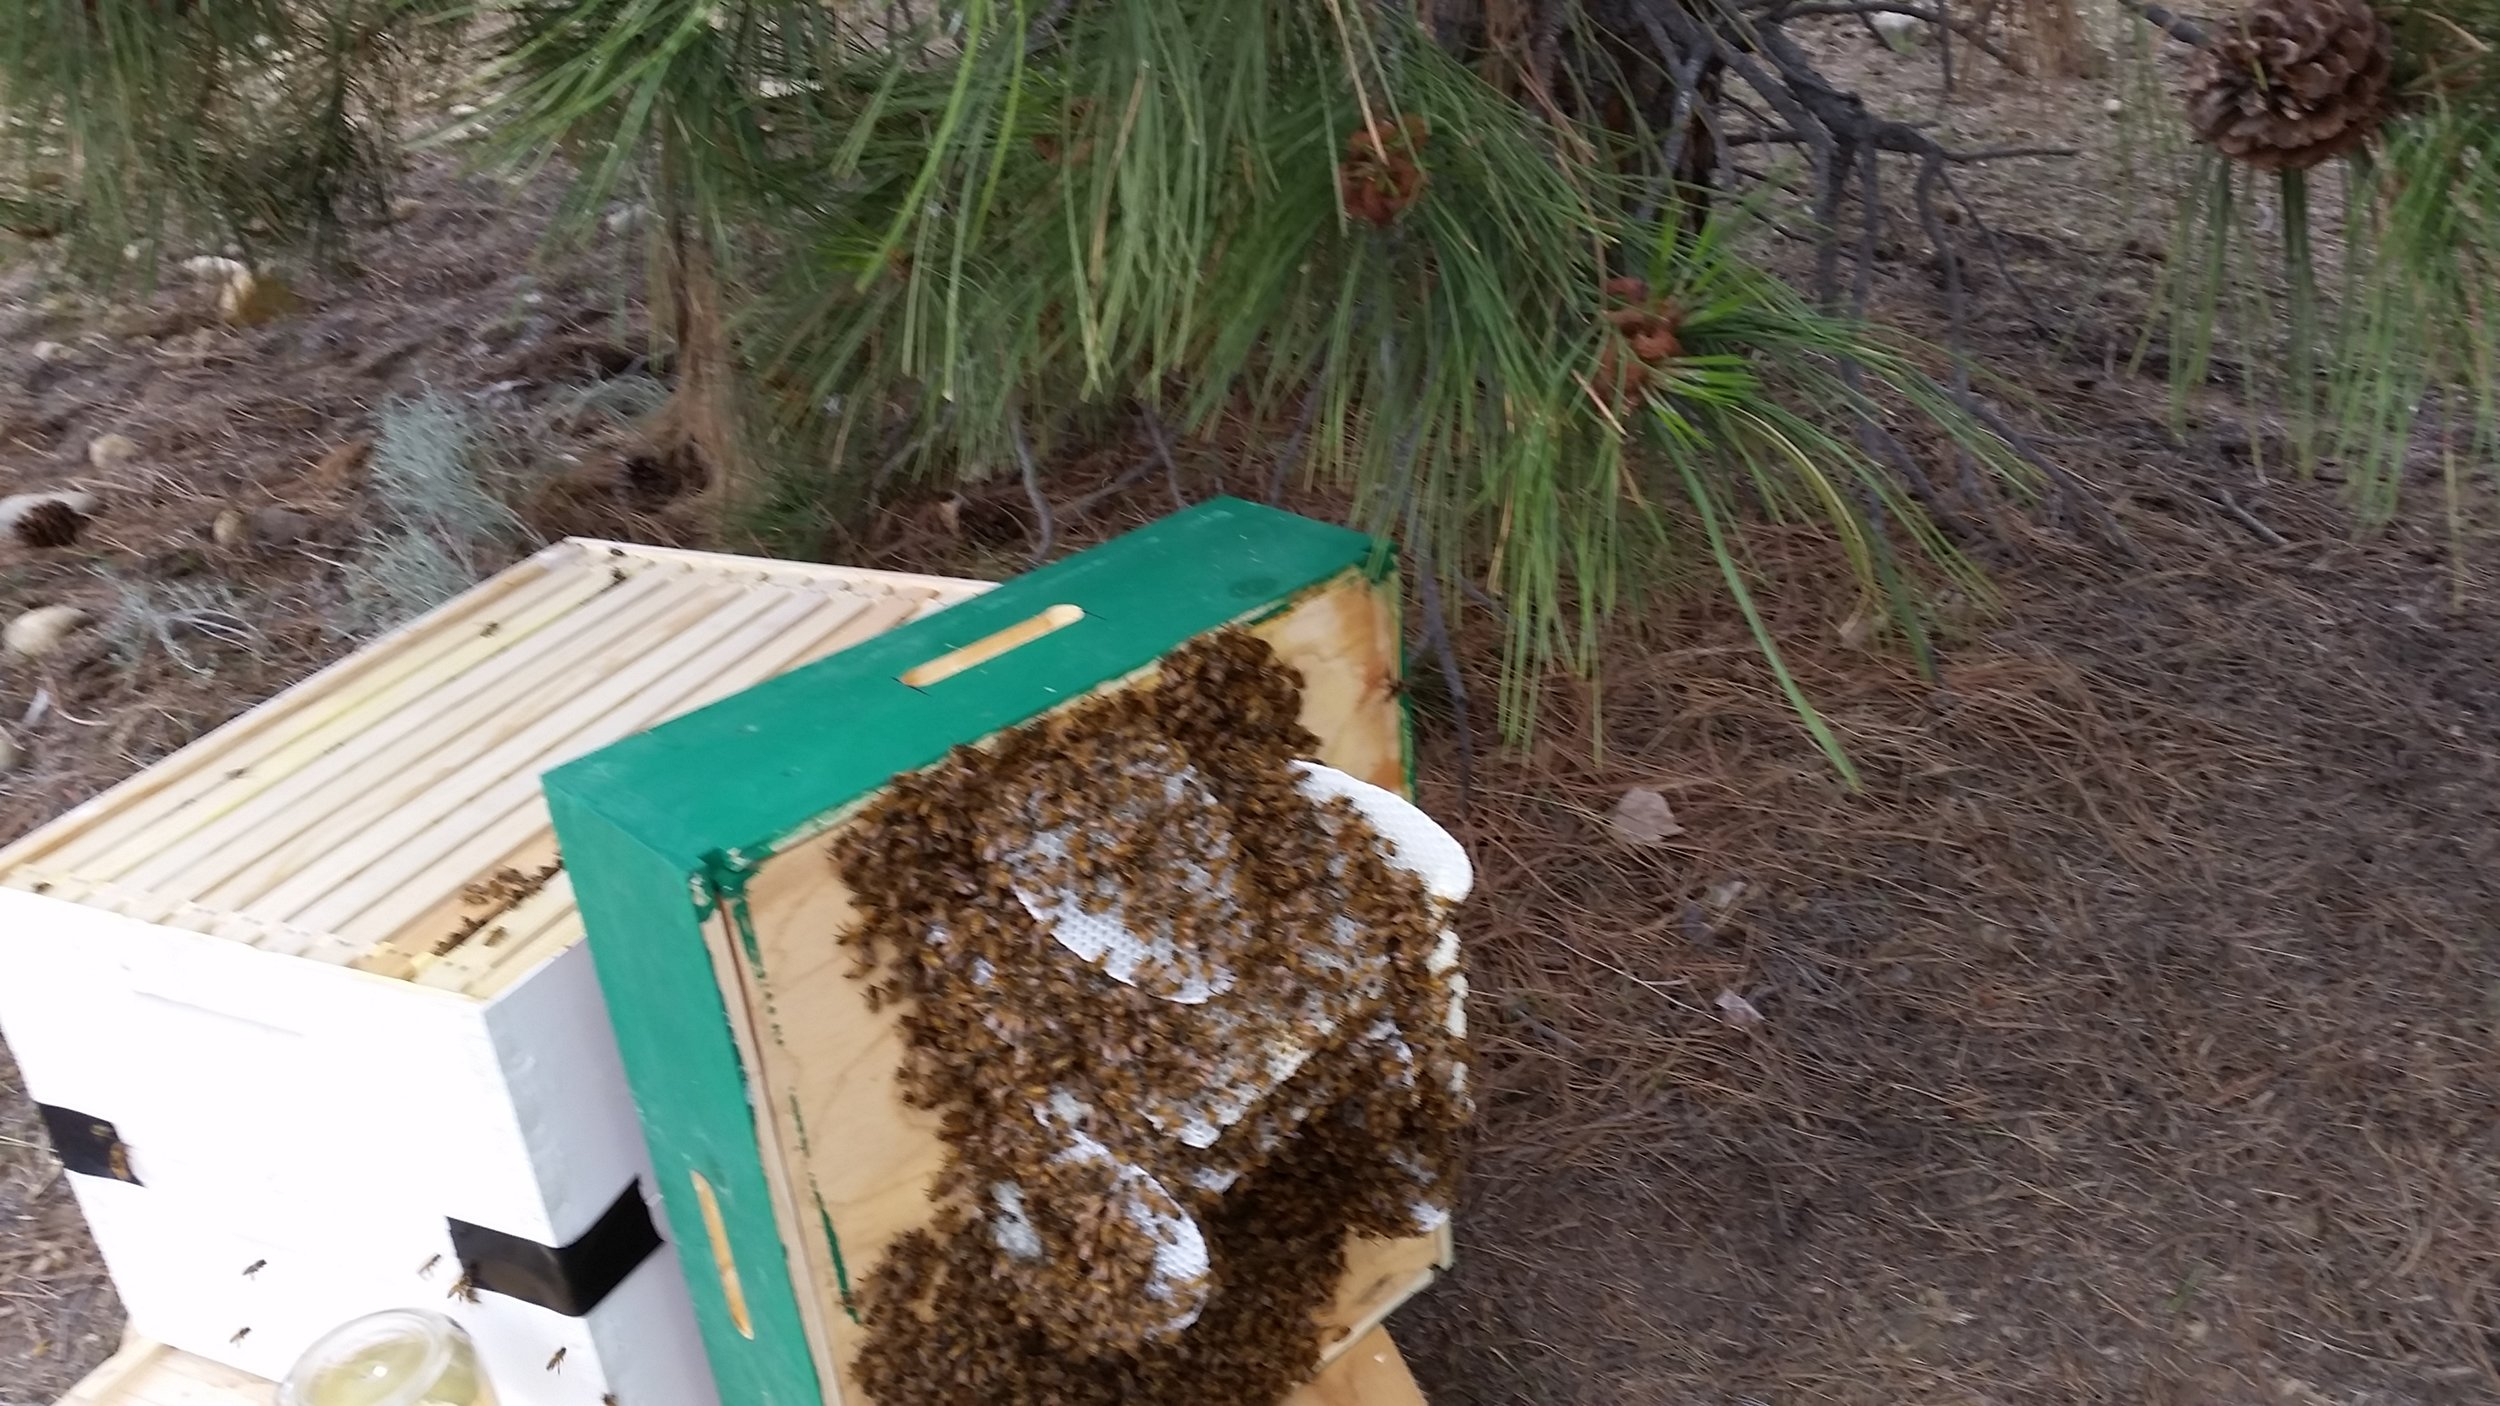 New comb from a swarm